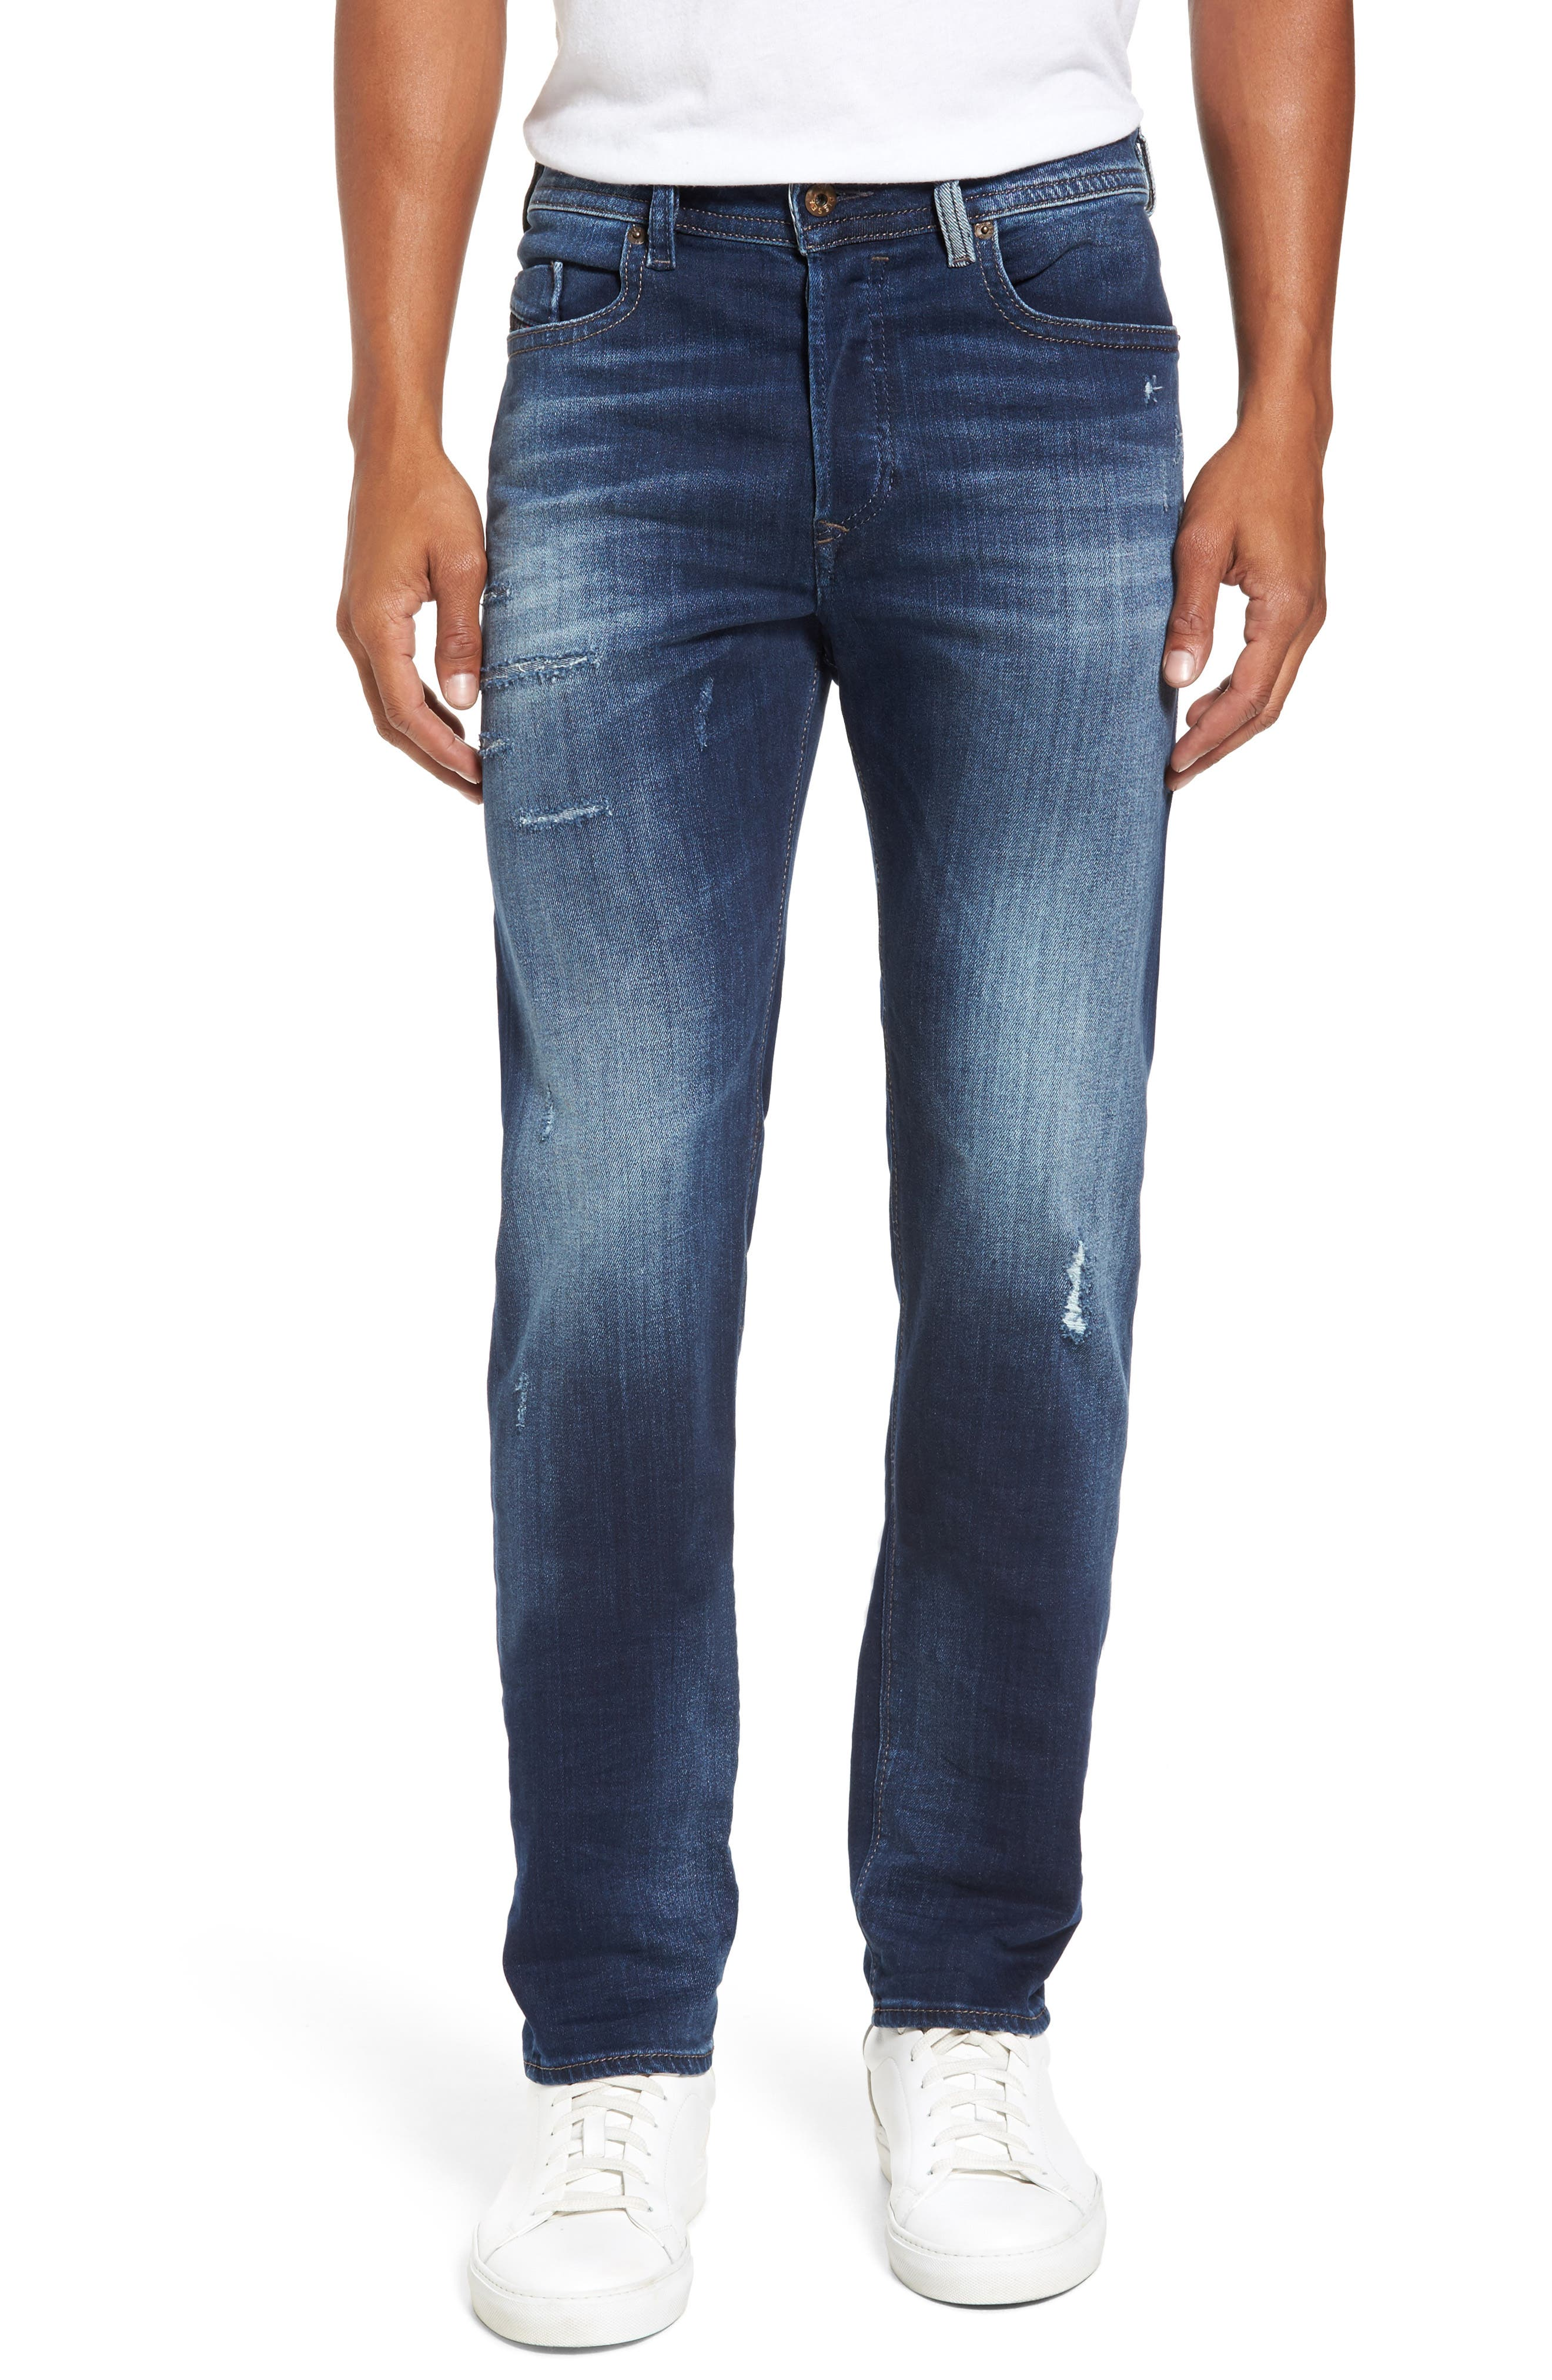 Buster Slim Straight Leg Jeans,                         Main,                         color, Denim